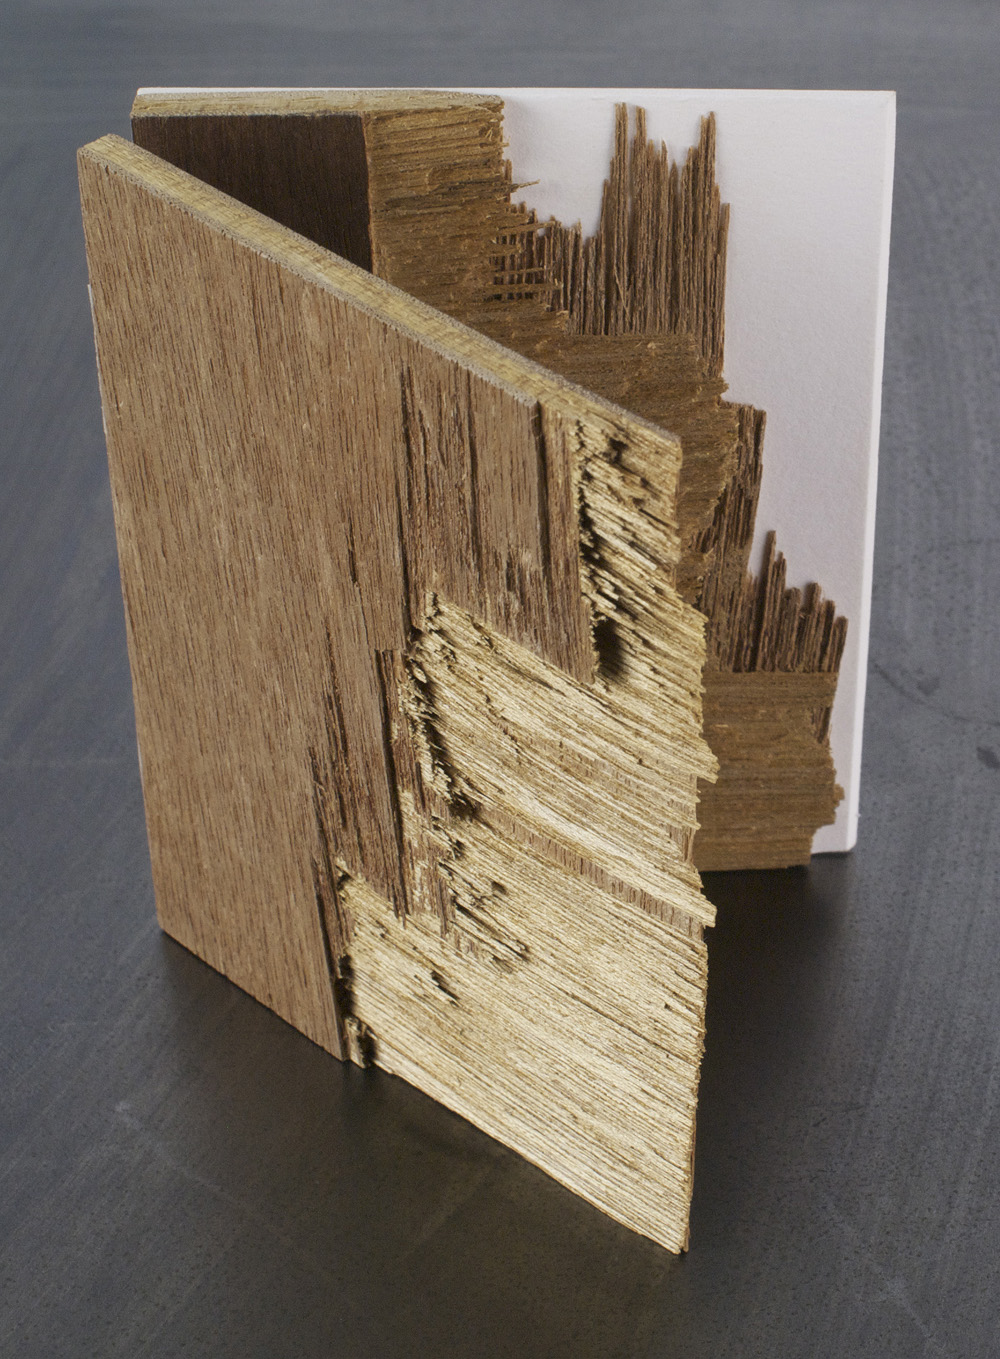 Don Myhre   Splendor in the Splinter , 2010  Mixed media artist's book